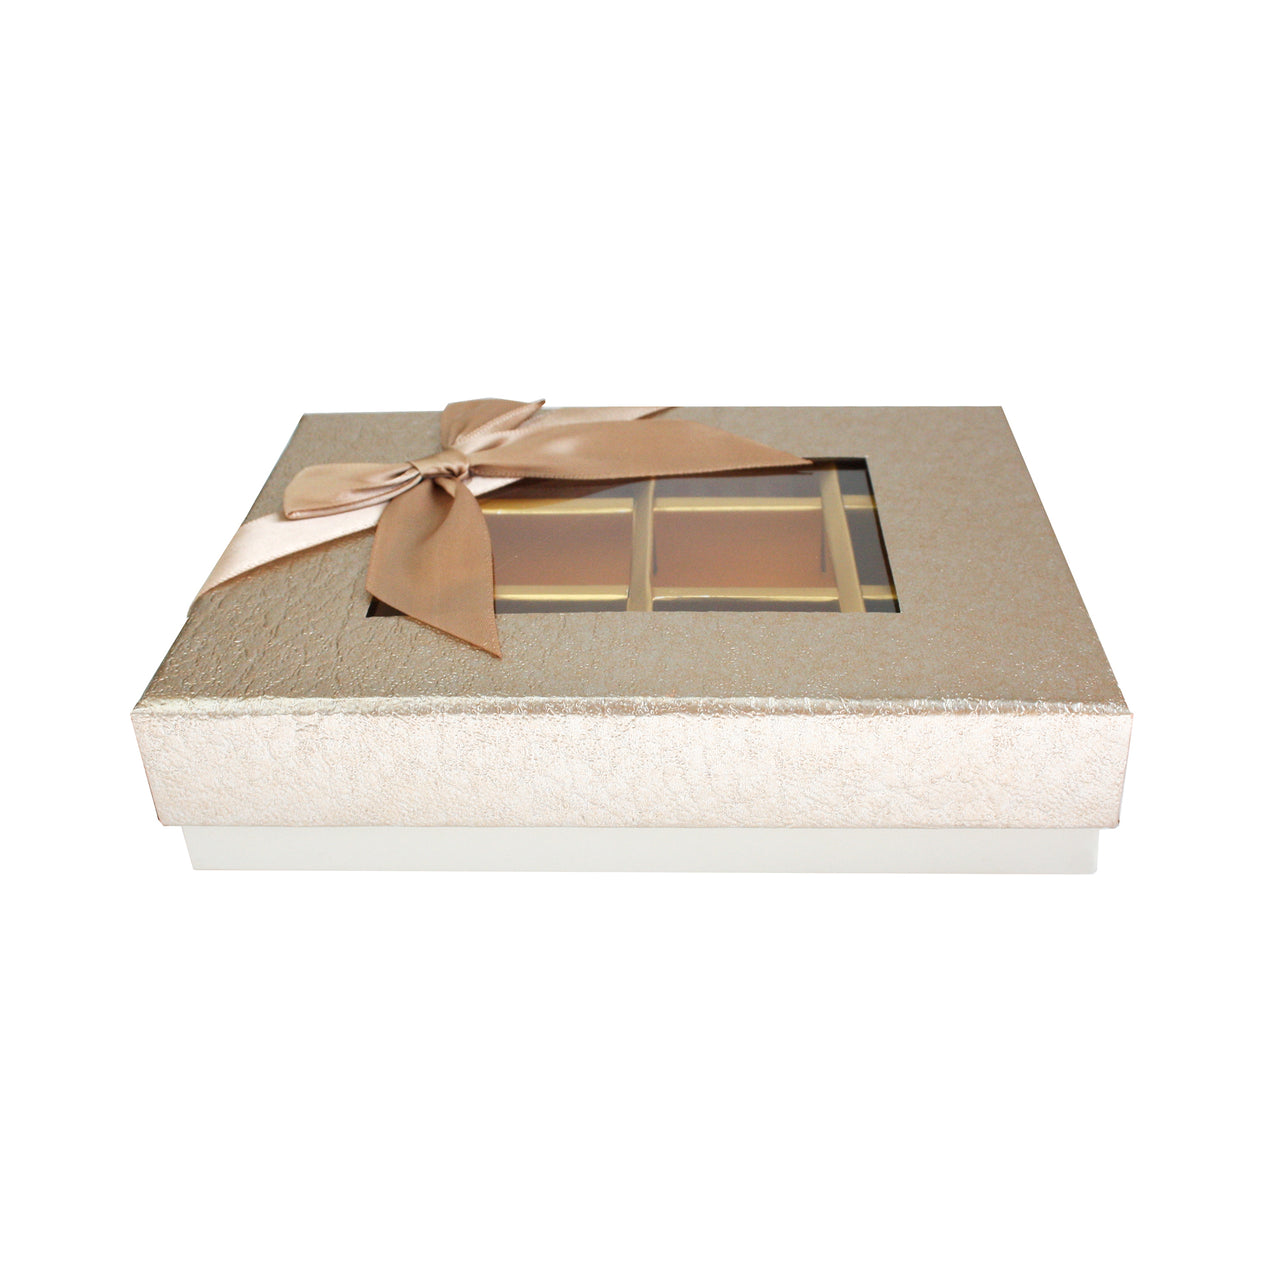 12 Compartment Metallic Gift Box - Gold